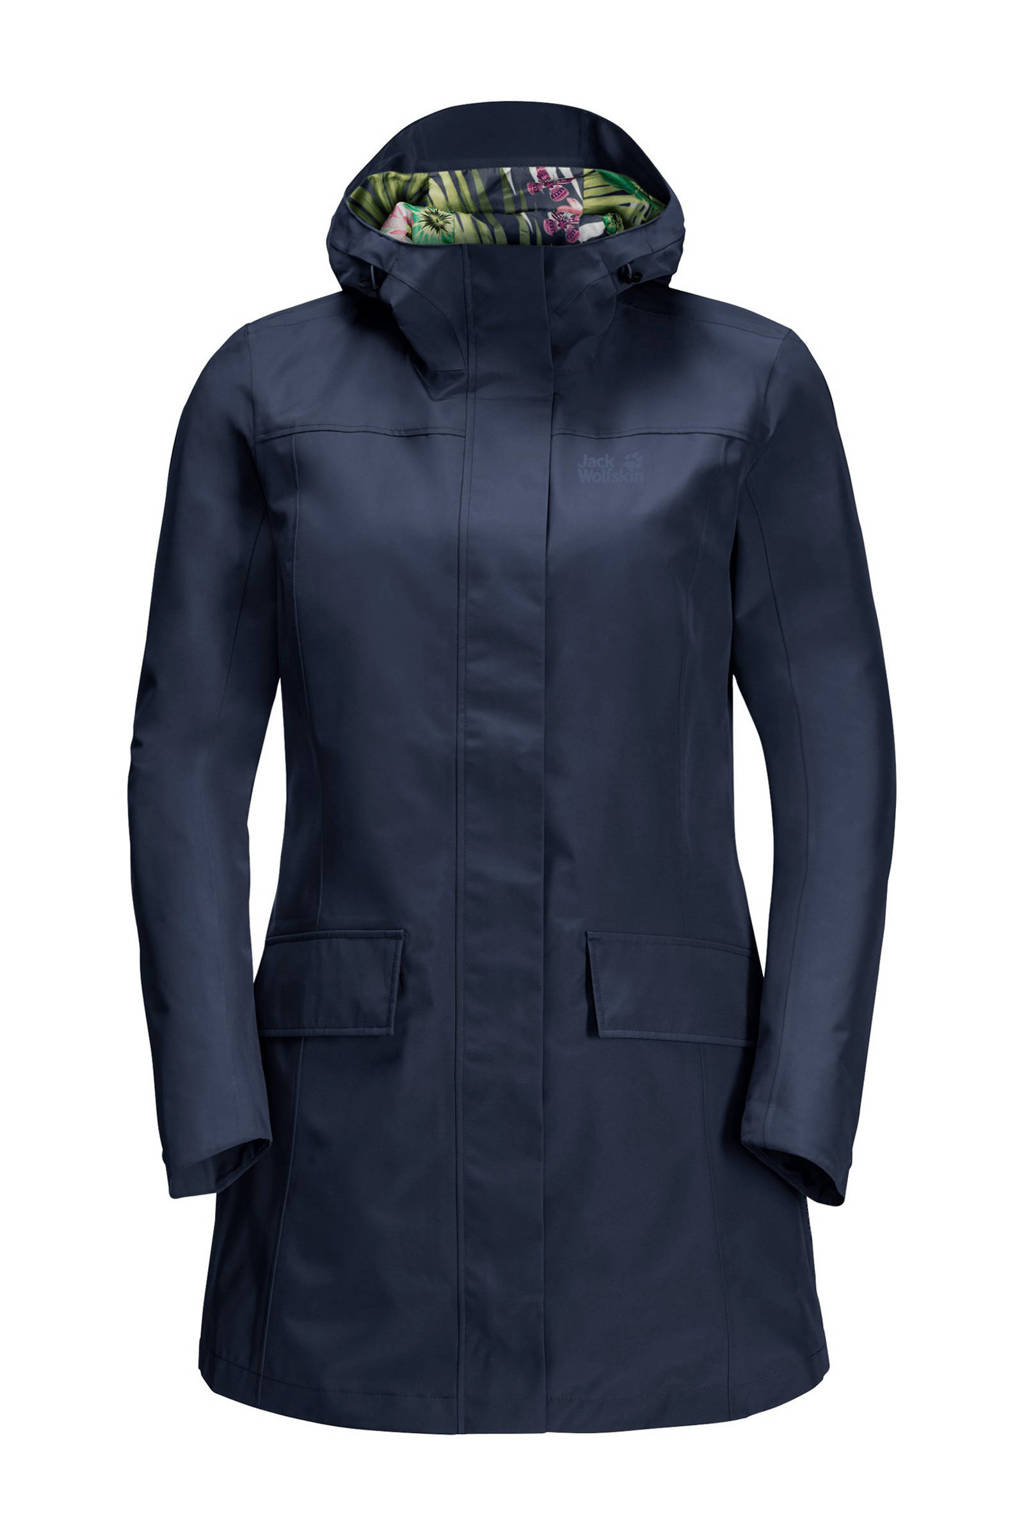 Jack Wolfskin outdoor jas donkerblauw, Midnight-Blue